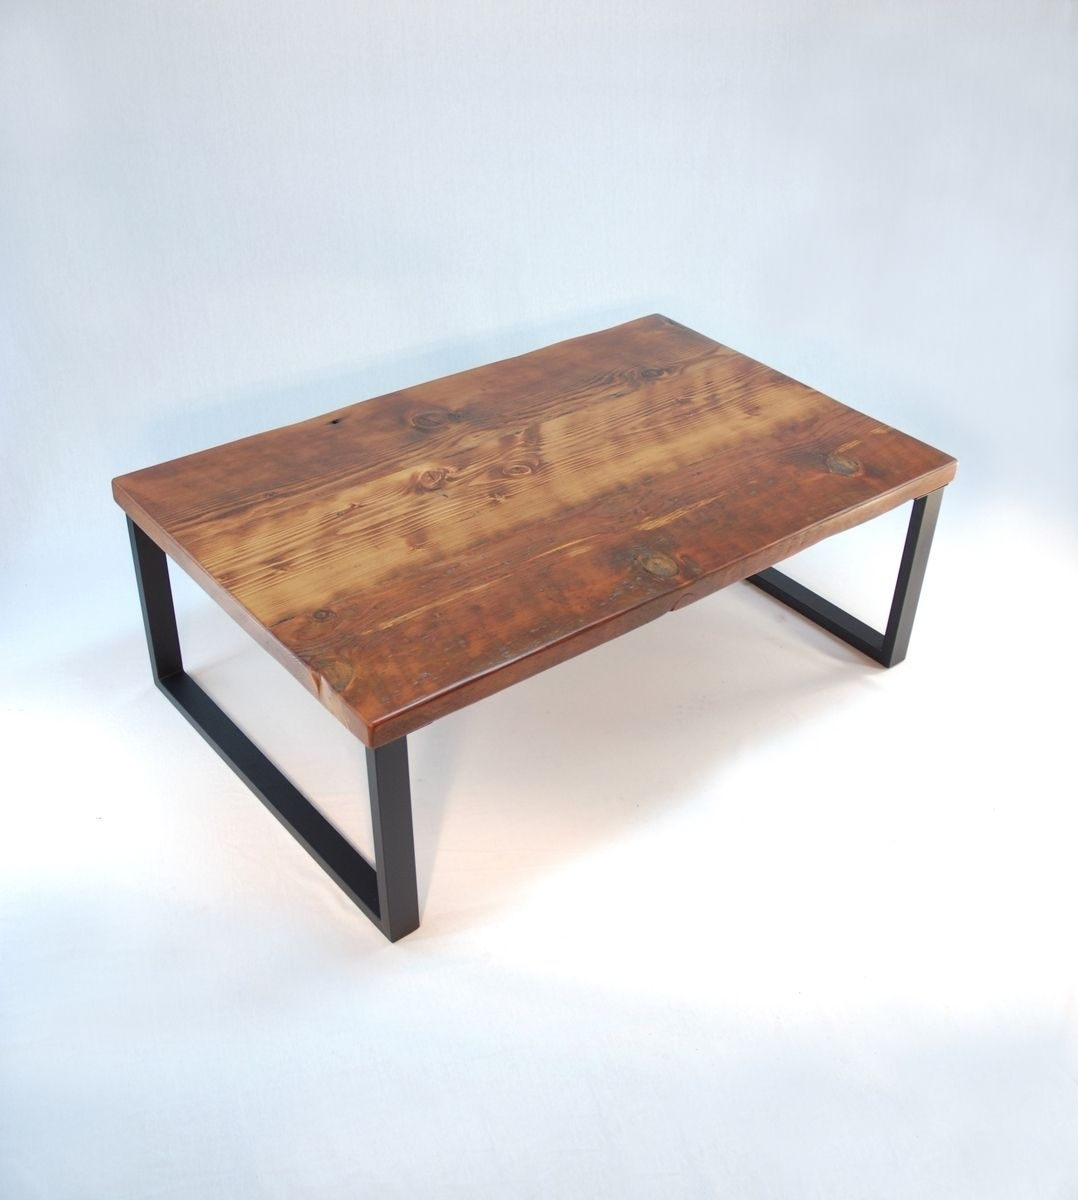 Home Design Ideas Stylish Coffee Table Kitchen Tables Modern Rustic Throughout Modern Rustic Coffee Tables (View 4 of 30)